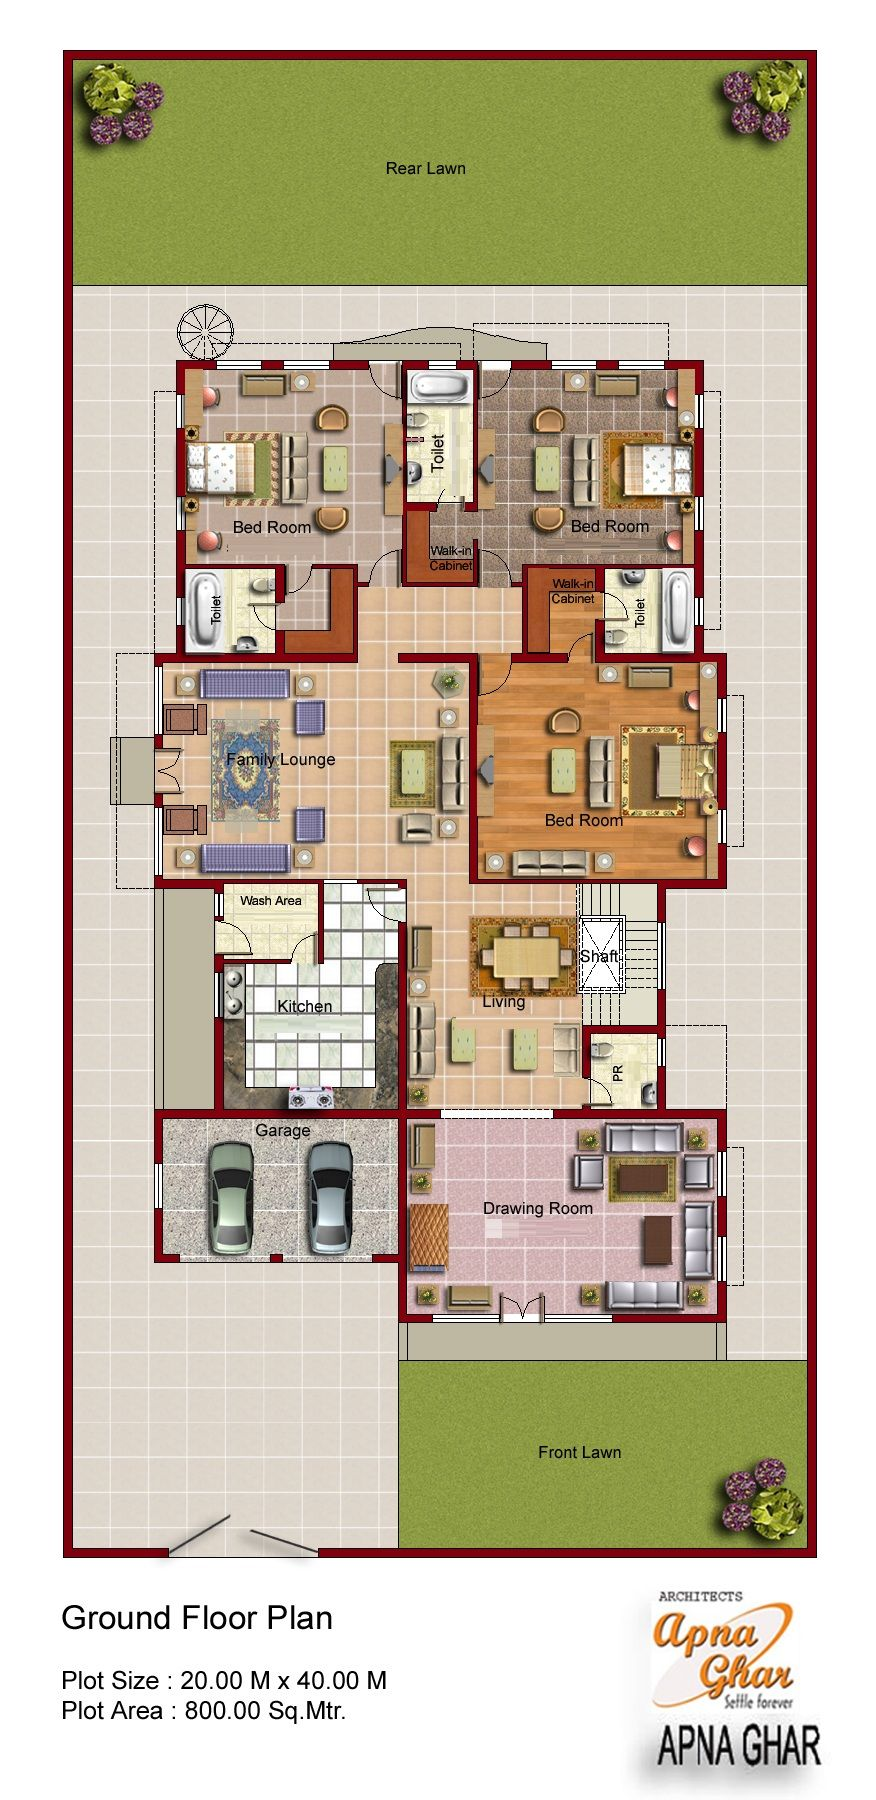 2d floor plan for modern duplex 2 floor house area 800 for 2 level house design